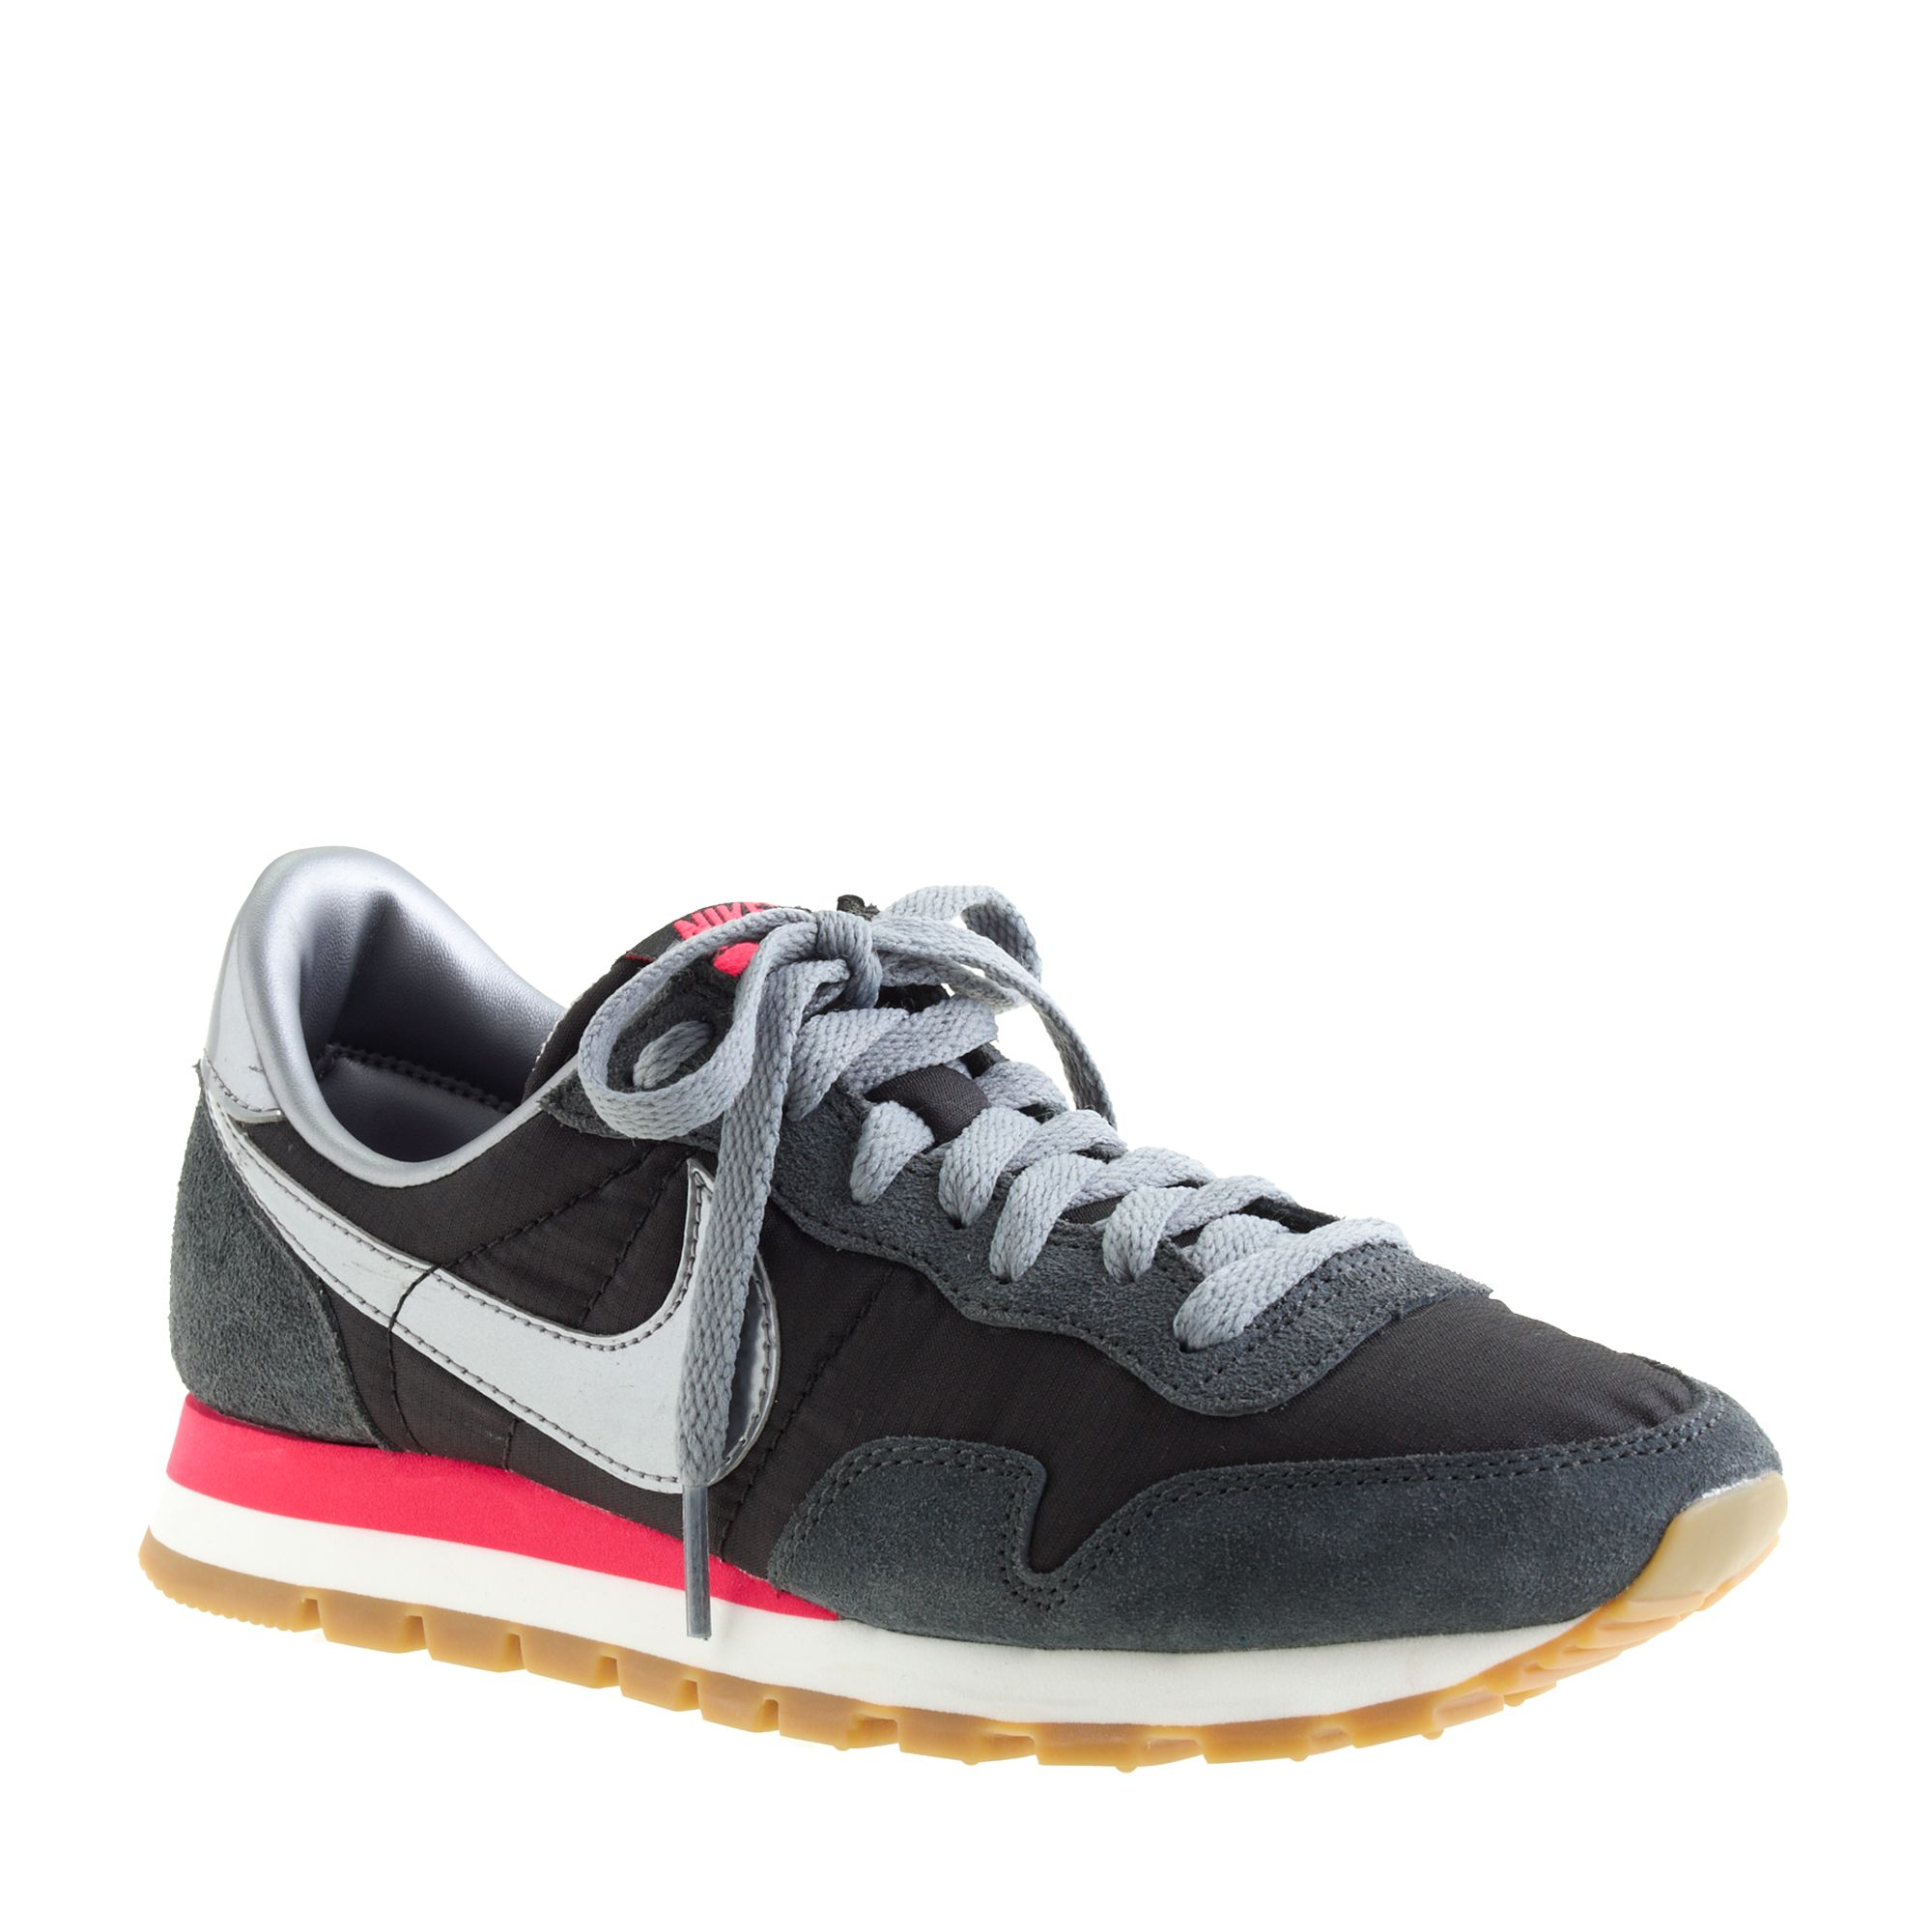 J.Crew Nike Vintage Collection Air Pegasus 83 Sneakers in Black - Lyst 0cbc78f1f9